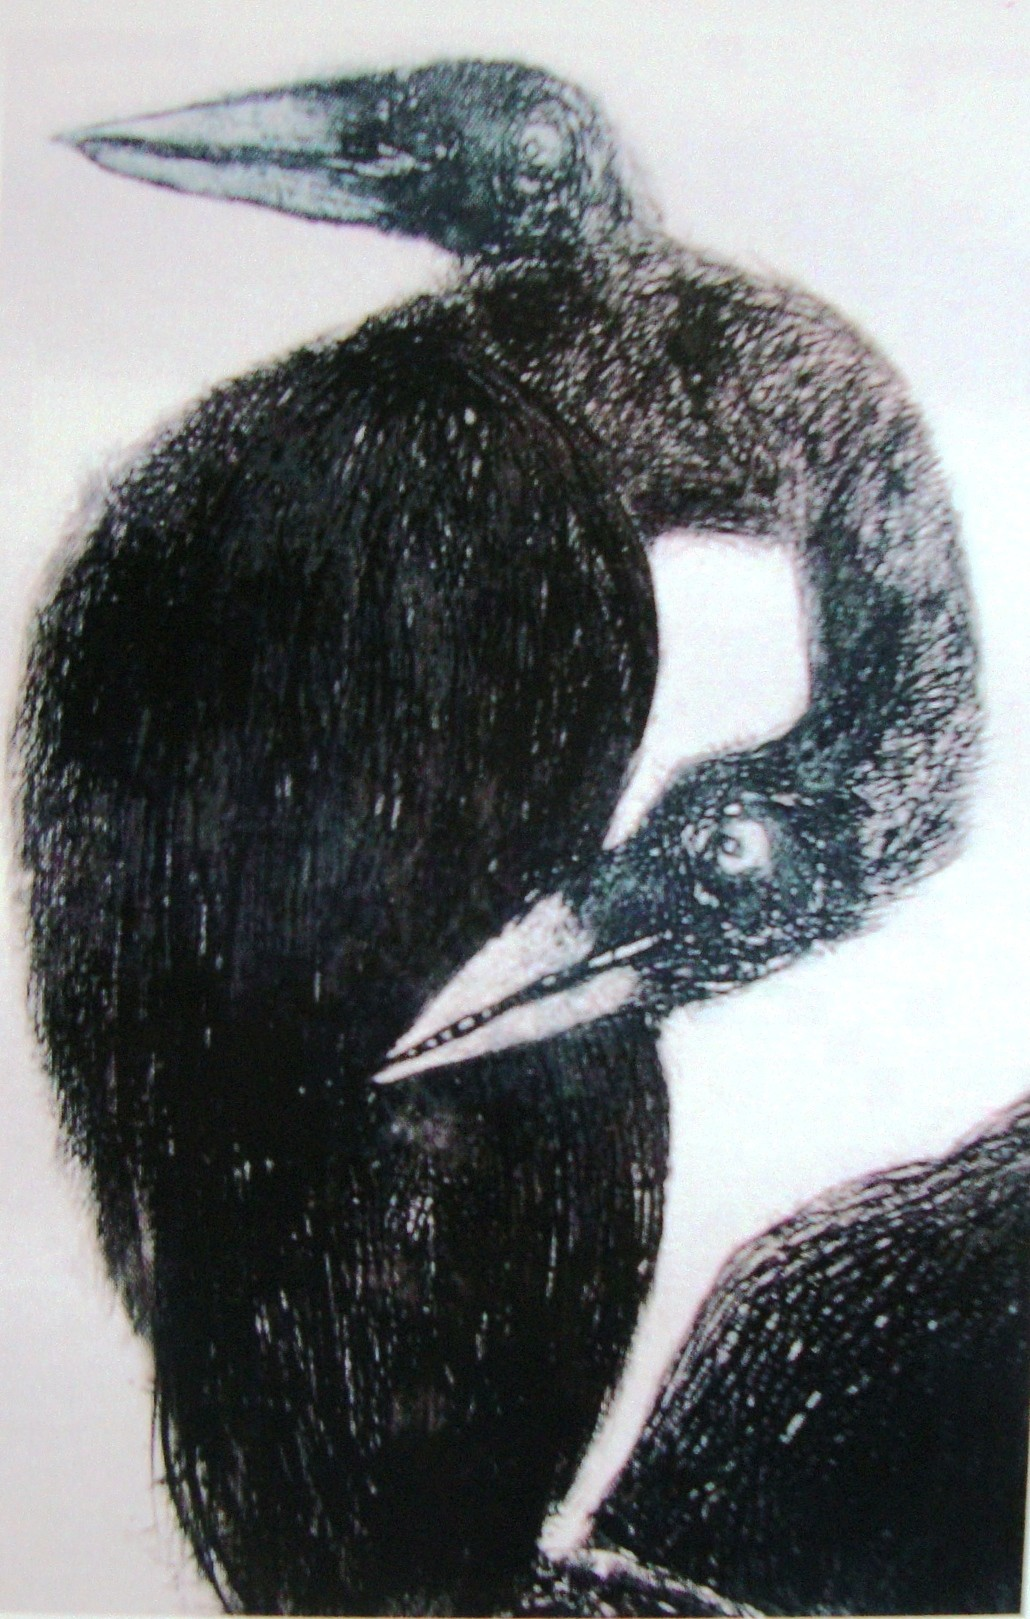 Aves by Shuvaprasanna B, Printmaking, Etching on Paper, Gray color